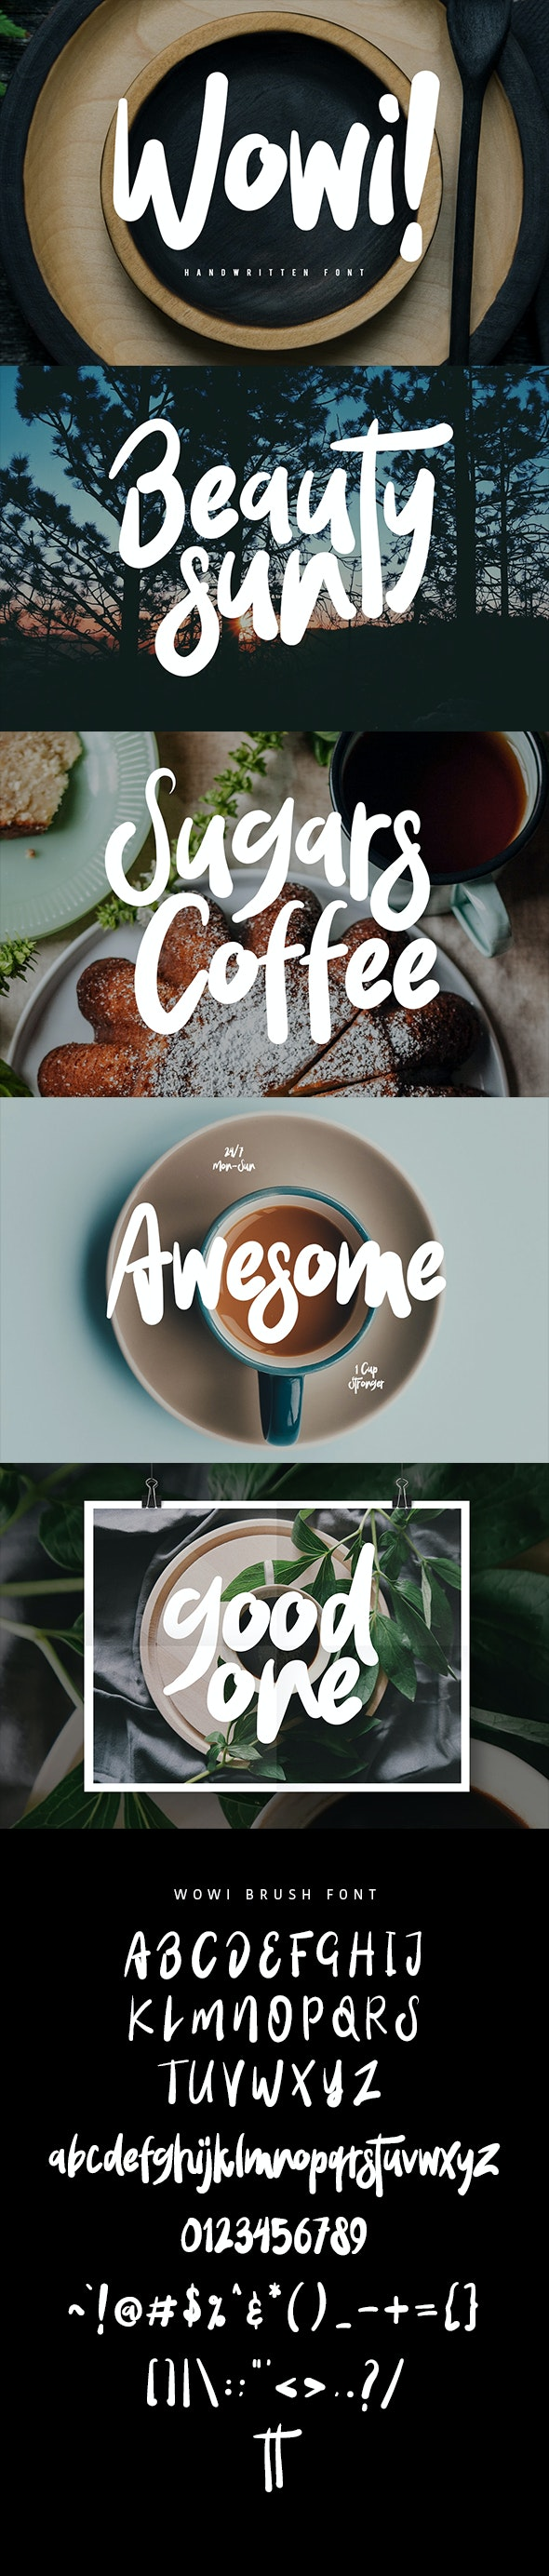 Wowi Typeface - Cool Fonts